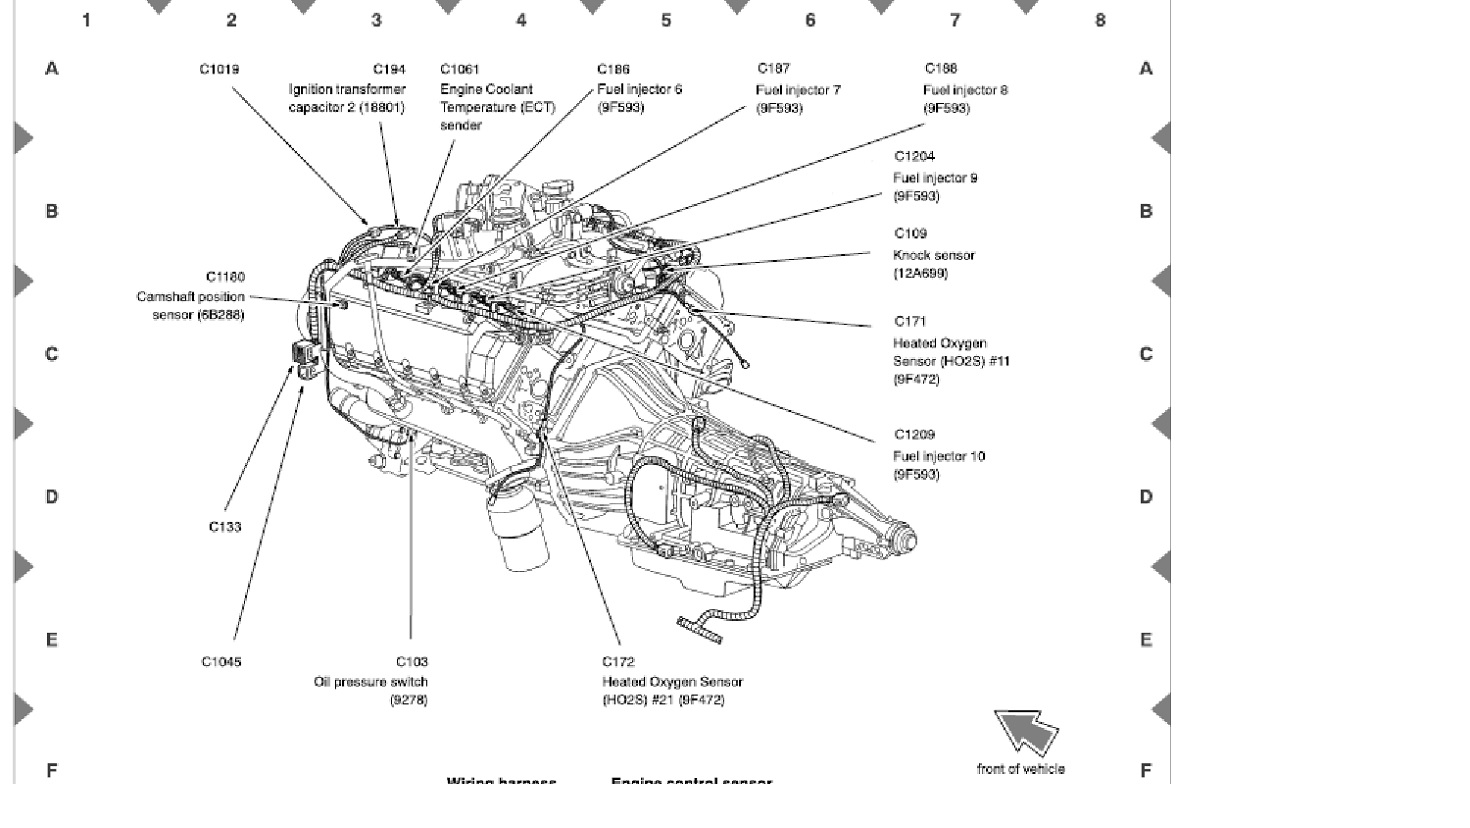 Honda Odyssey Wiring Diagram additionally 98 F150 Engine Diagram further ER2t 9447 together with SE3p 6659 further 1997 Honda Odyssey Horn Circuit Diagram. on honda odyssey trailer wiring harness